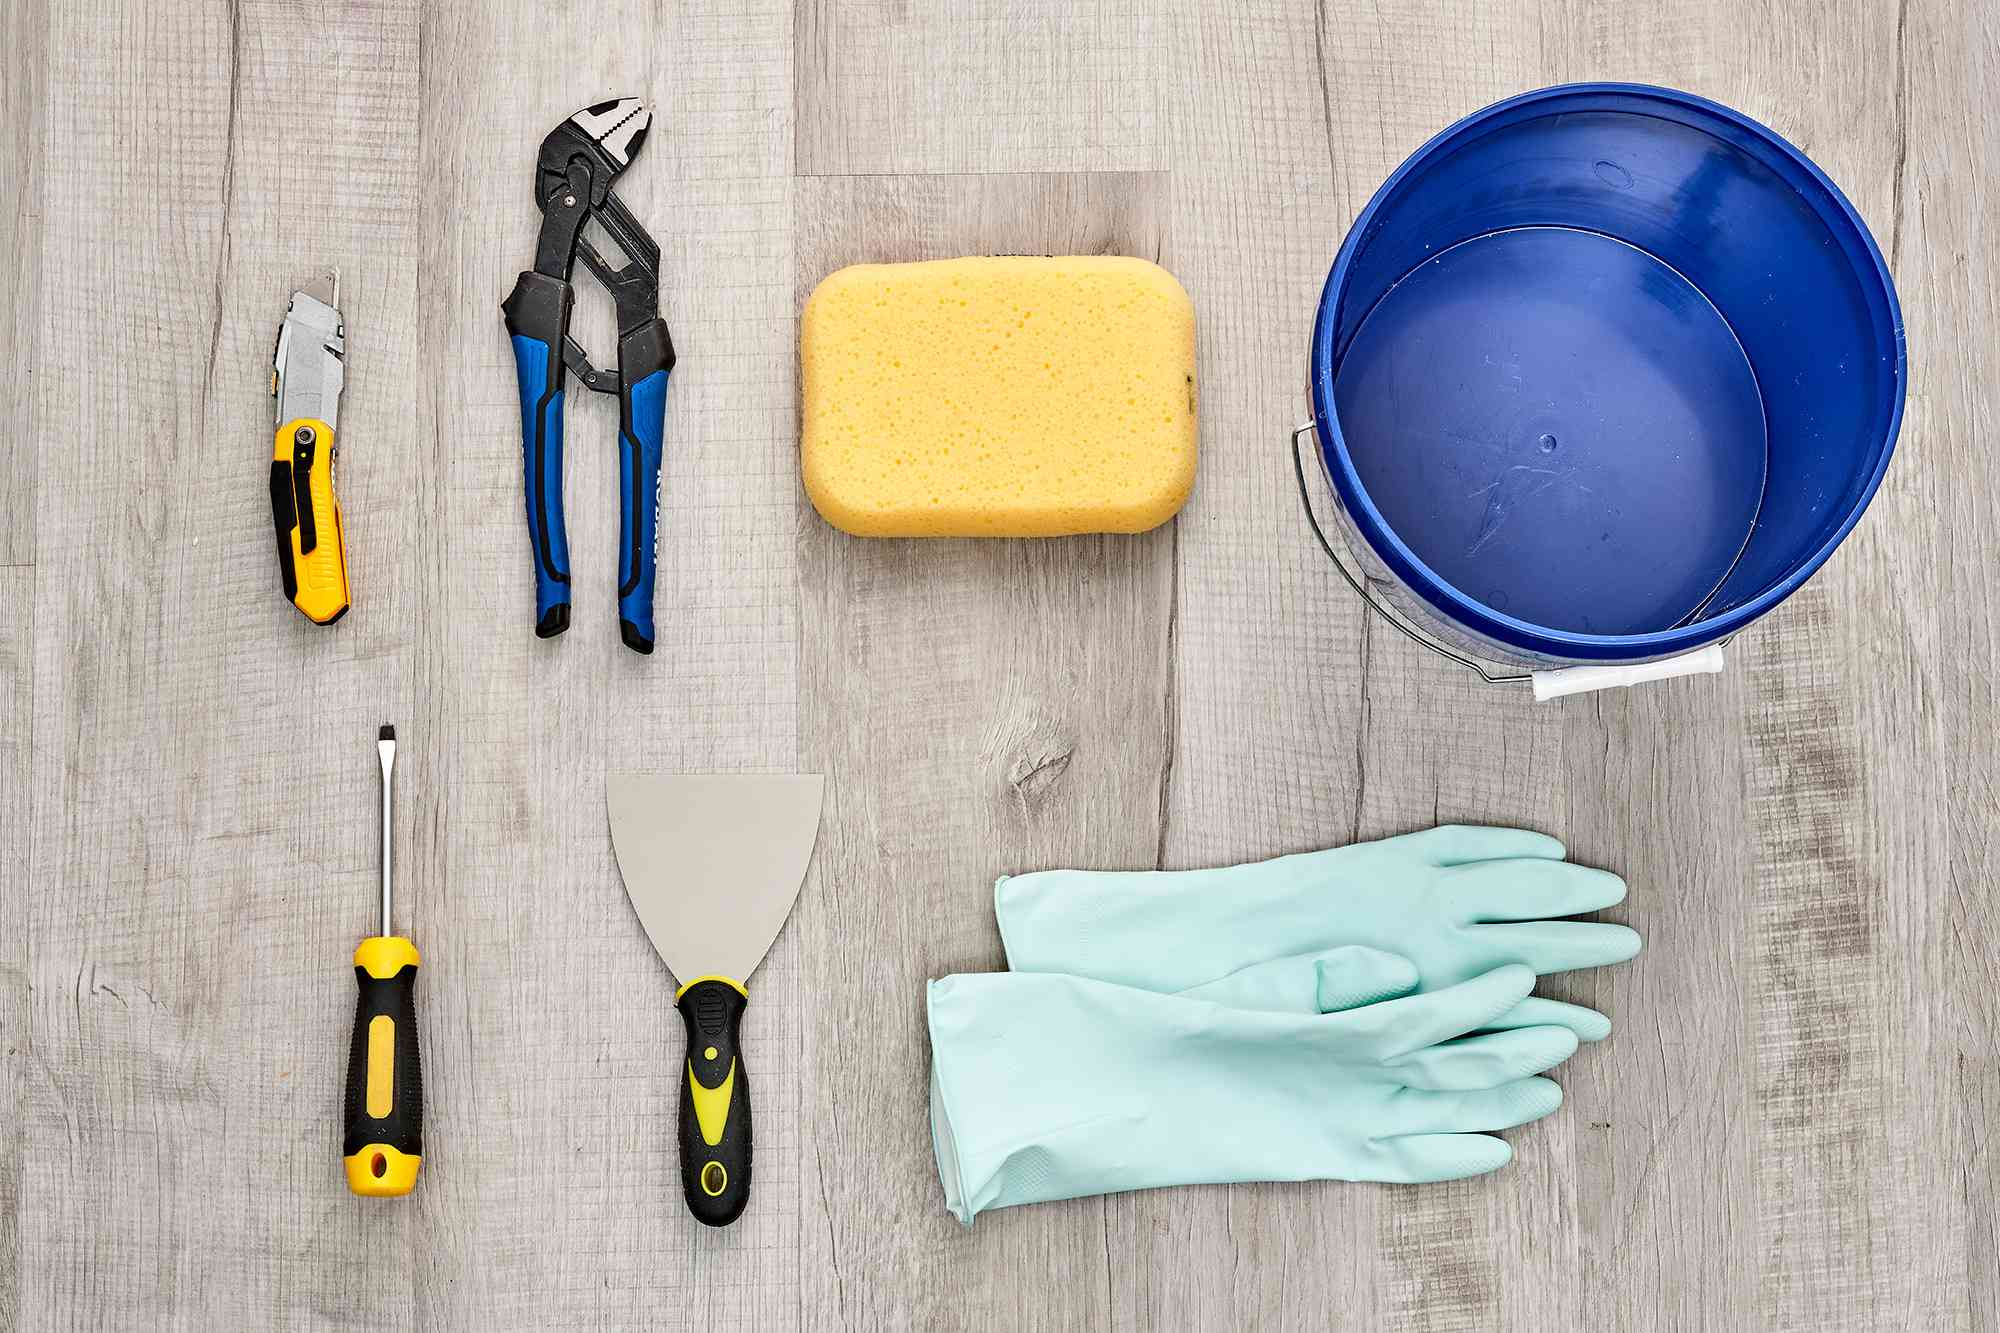 Materials and tools to remove a toilet